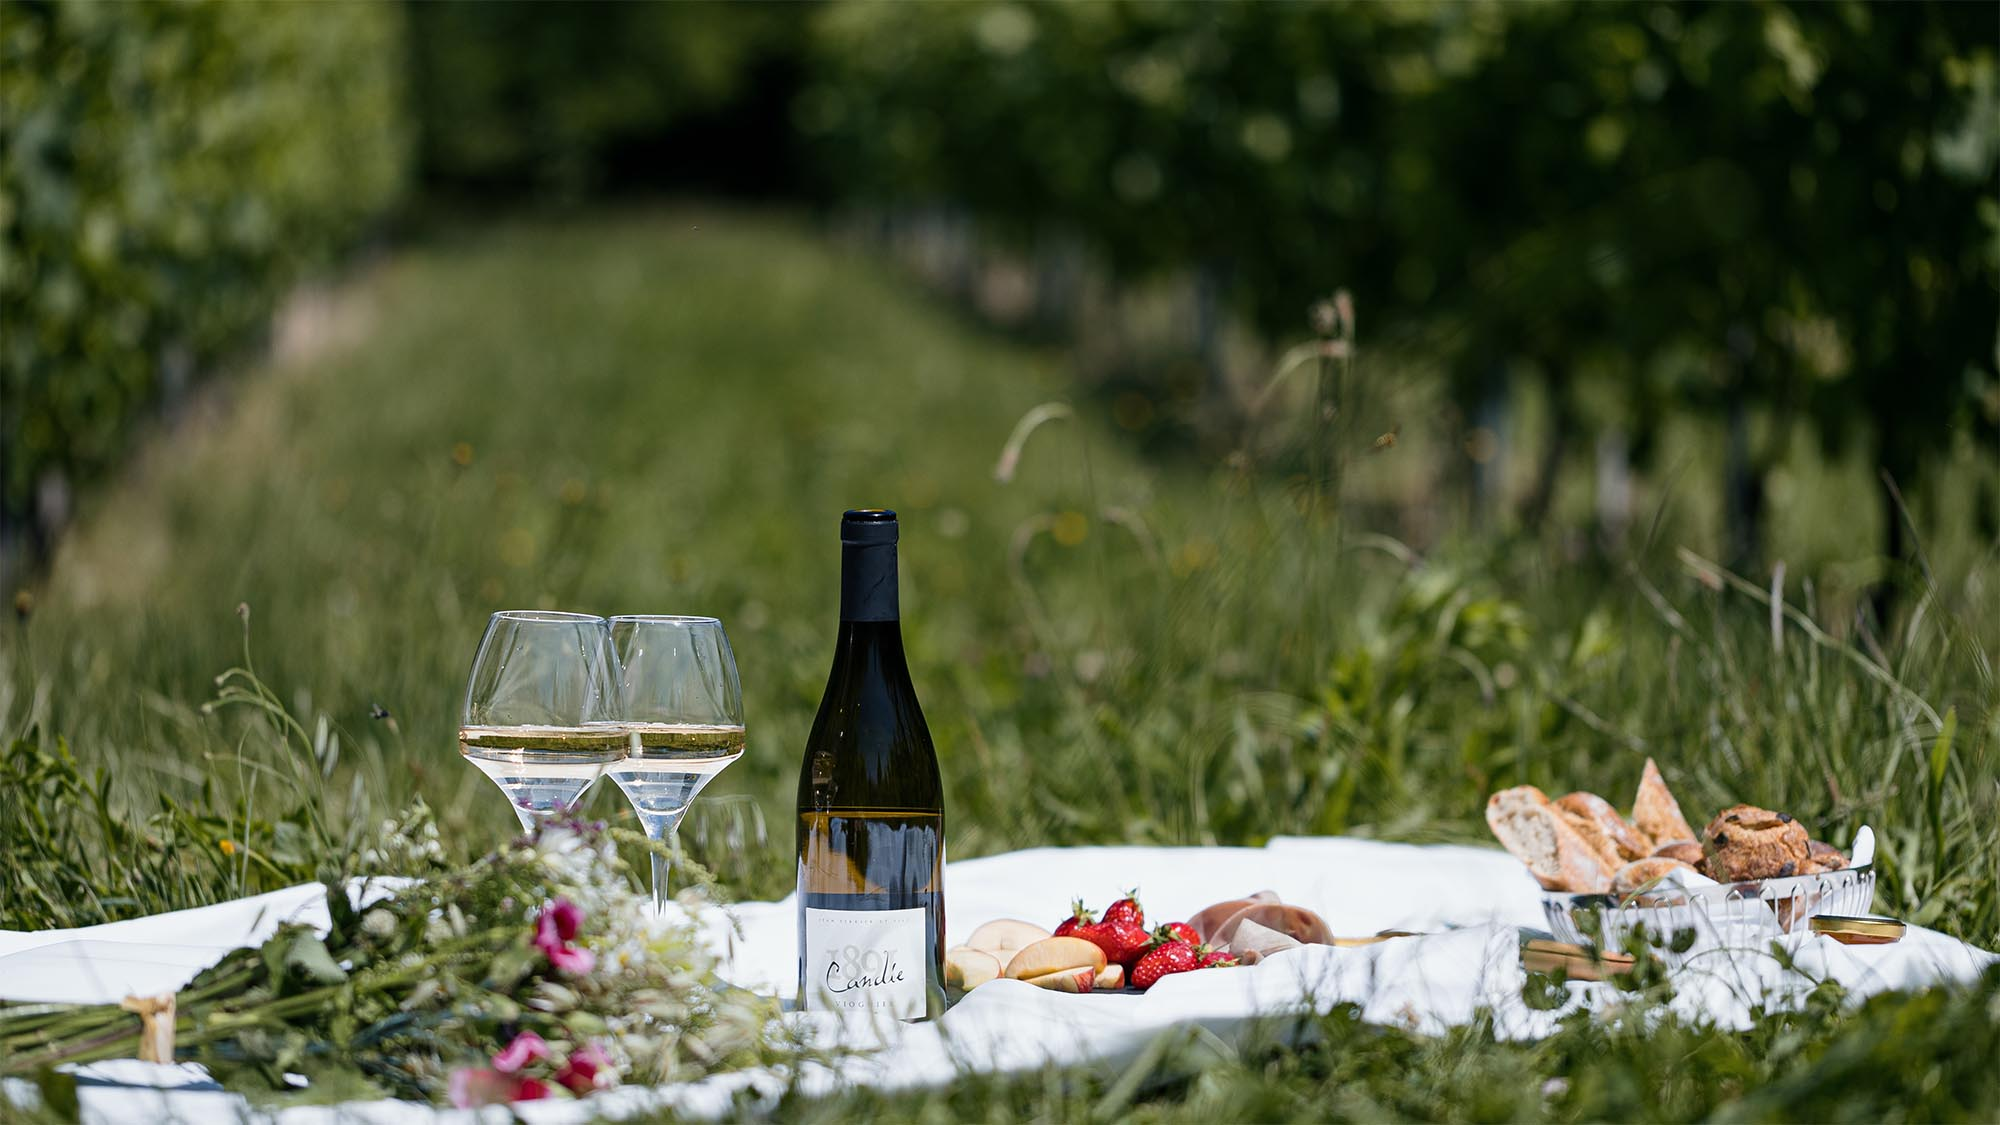 A picnic  photo with a bottle of Candie's wine